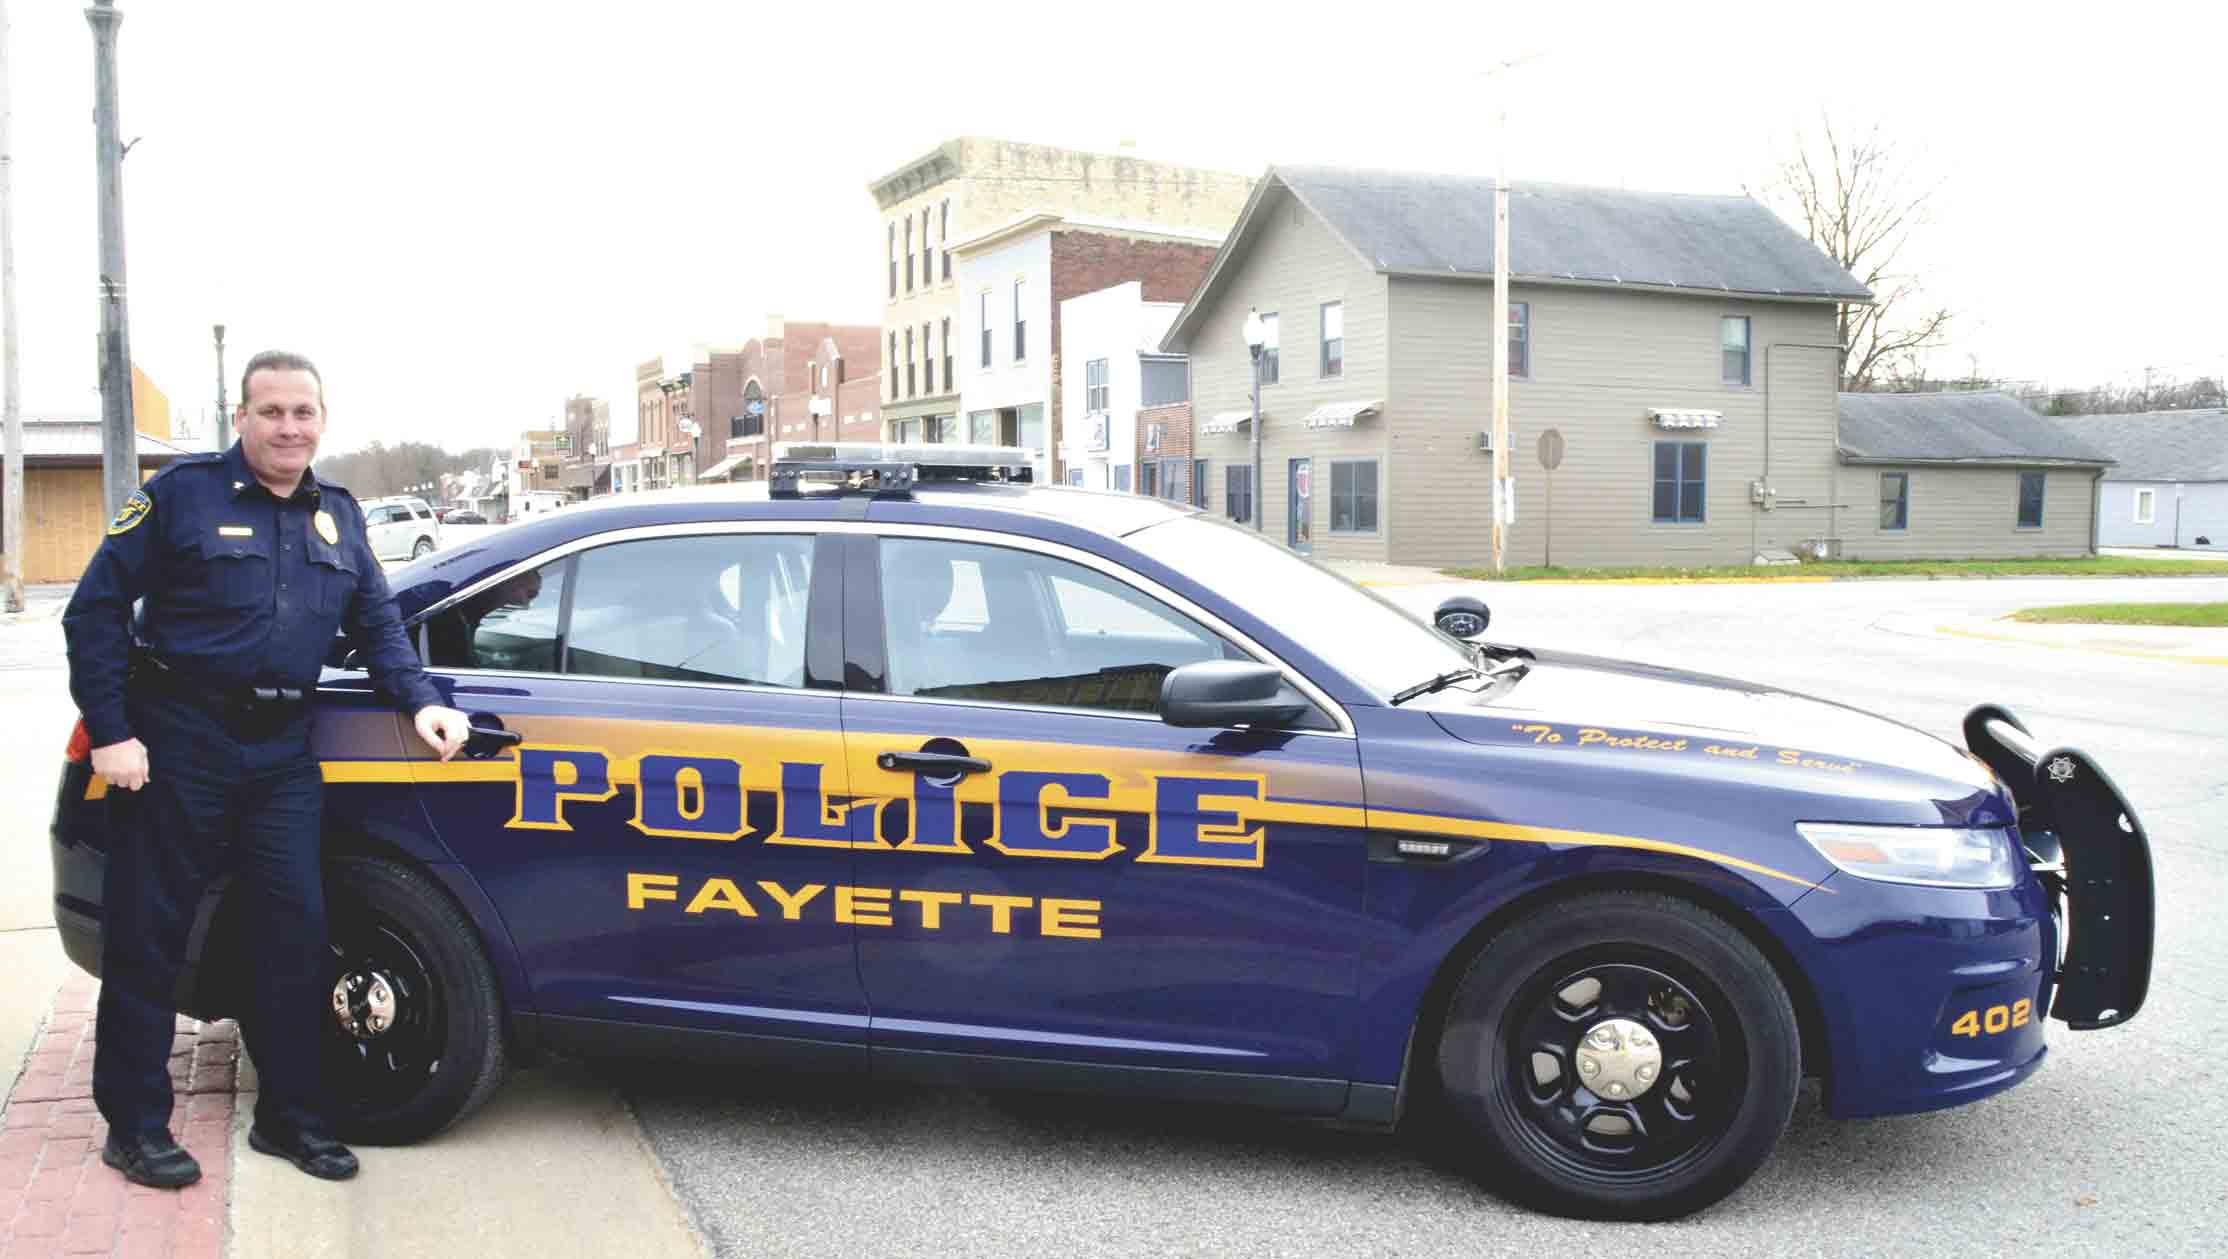 Fayette Police Chief Richard Pisanti recently resigned from his leadership duties after taking a similar chief's position with a department in Tallahassee, Fla. Pisanti's last day with the Fayette Police Department will be Friday, May 11.  	Chief Pisanti resigns...